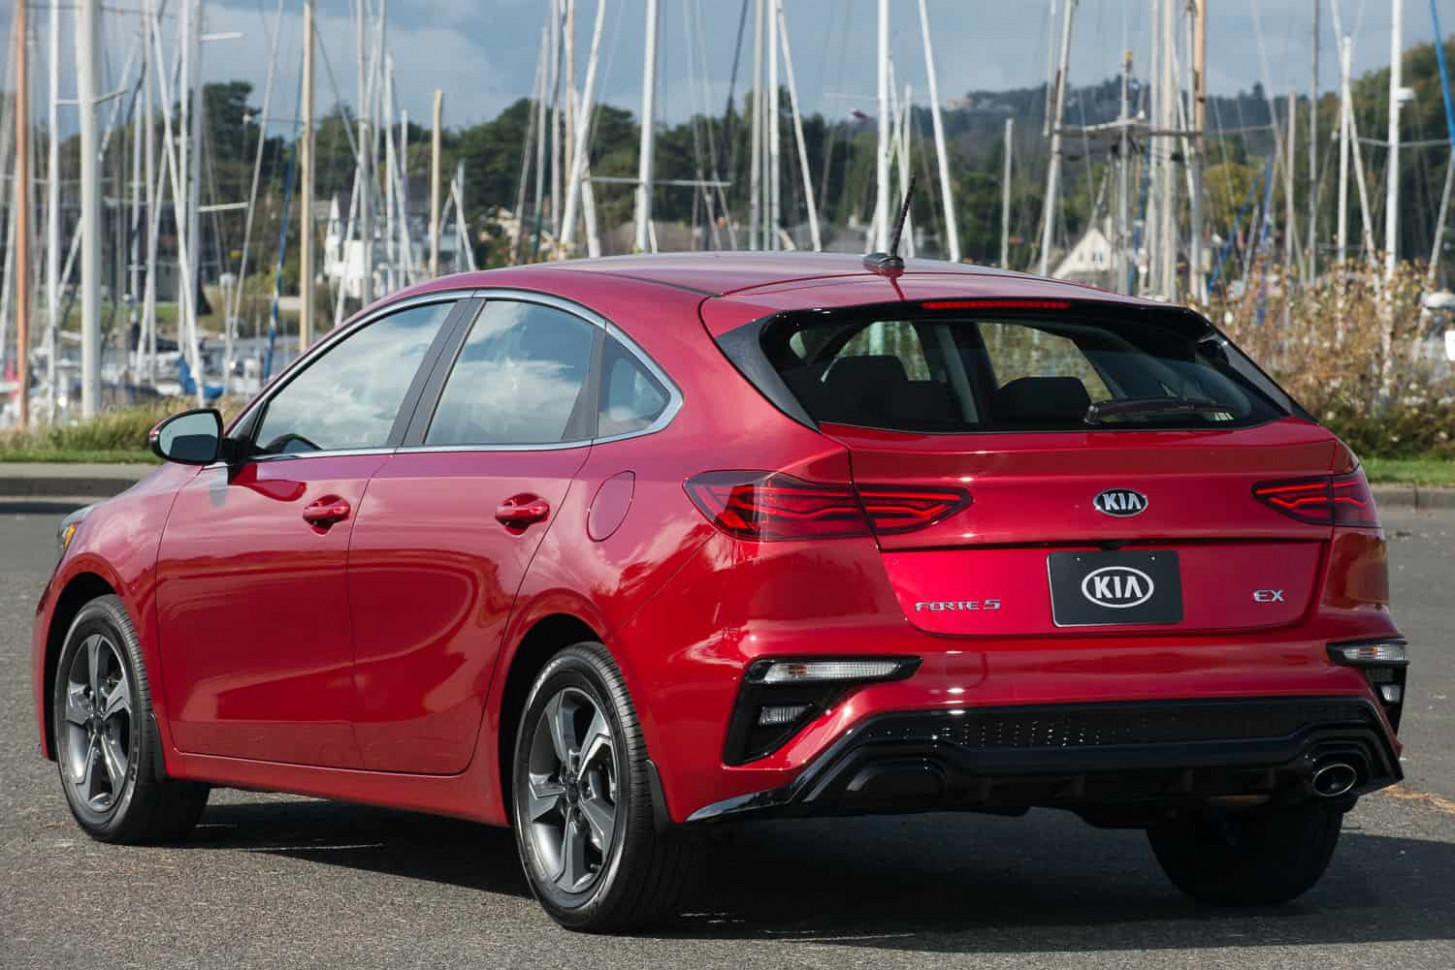 First Drive: 11 Kia Forte11 Hatchback Review | Forget Crossovers - 2020 kia forte hatchback